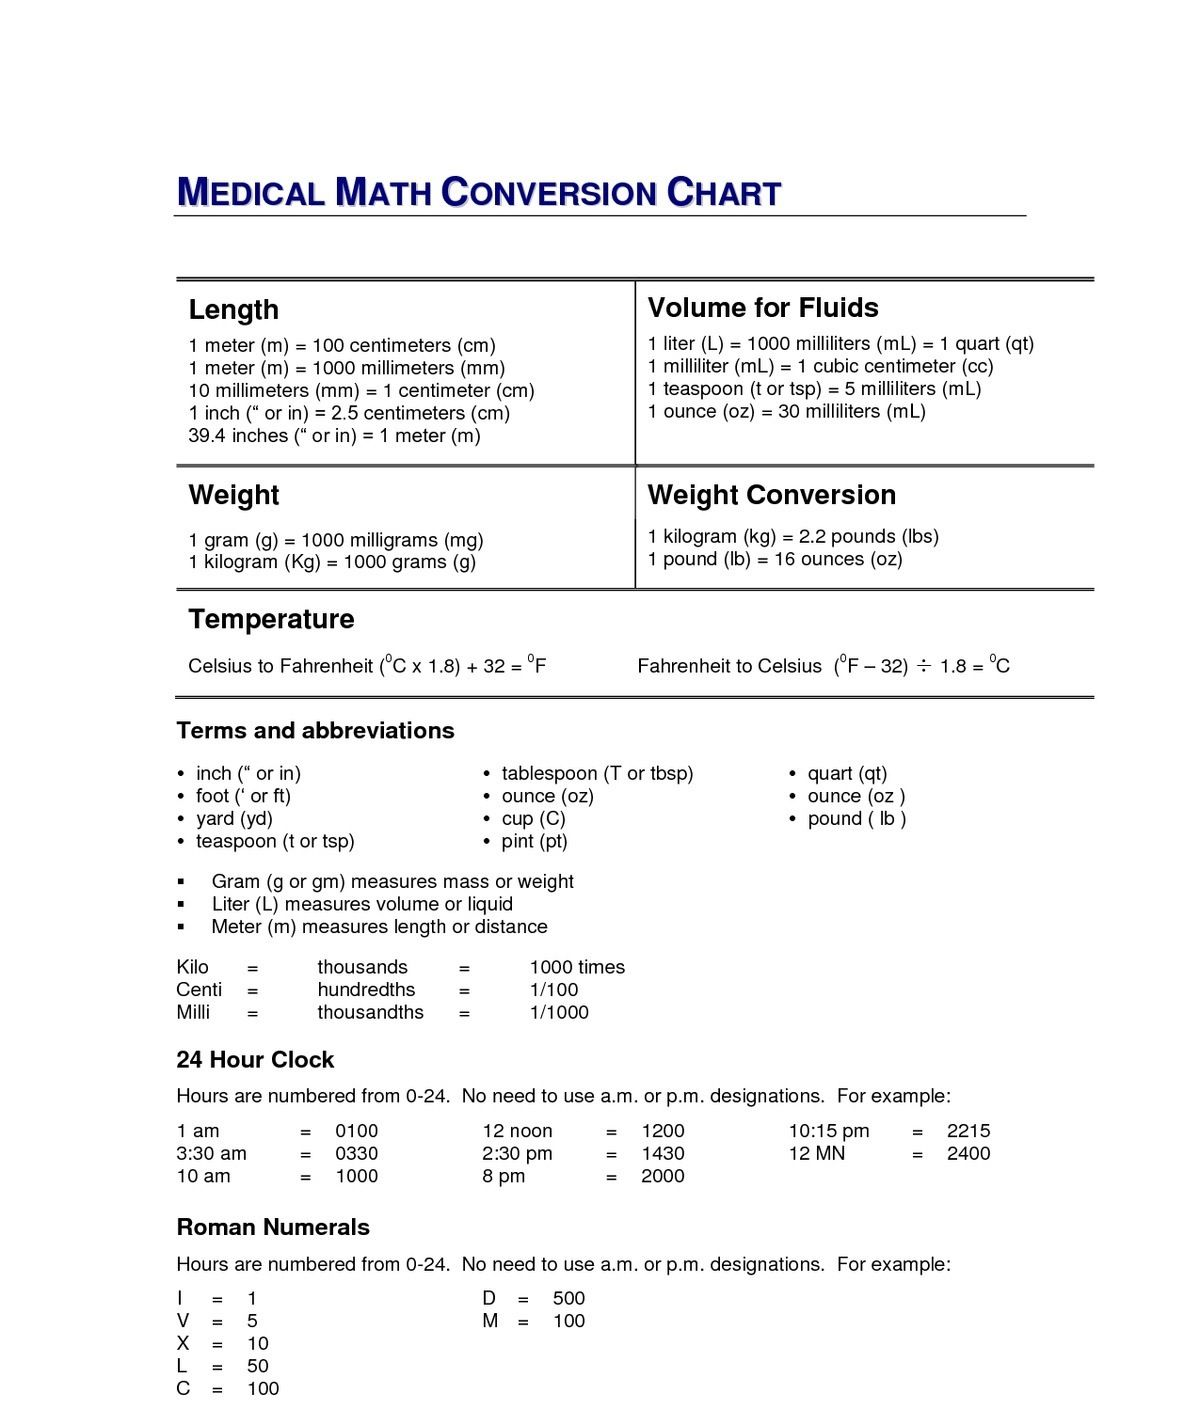 Med Math Conversion Chart